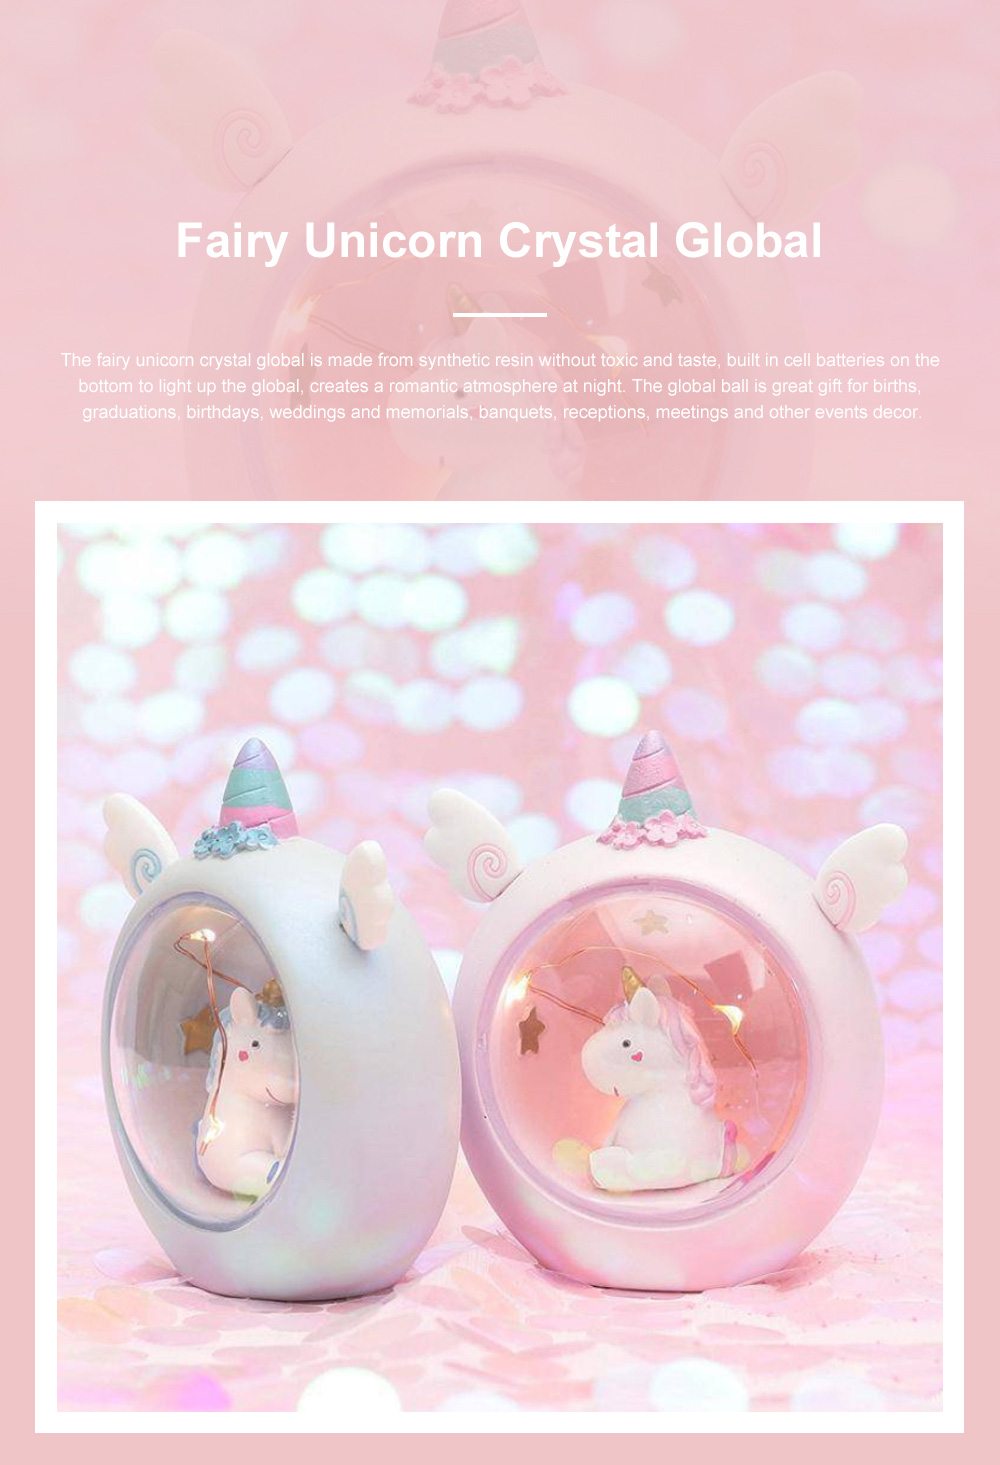 Fairy Unicorn Snow Globe Night Light for Kids Girls Granddaughters Babies Birthday Gift Pretty Creative LED Unicorn Crystal Ball Lamp 0